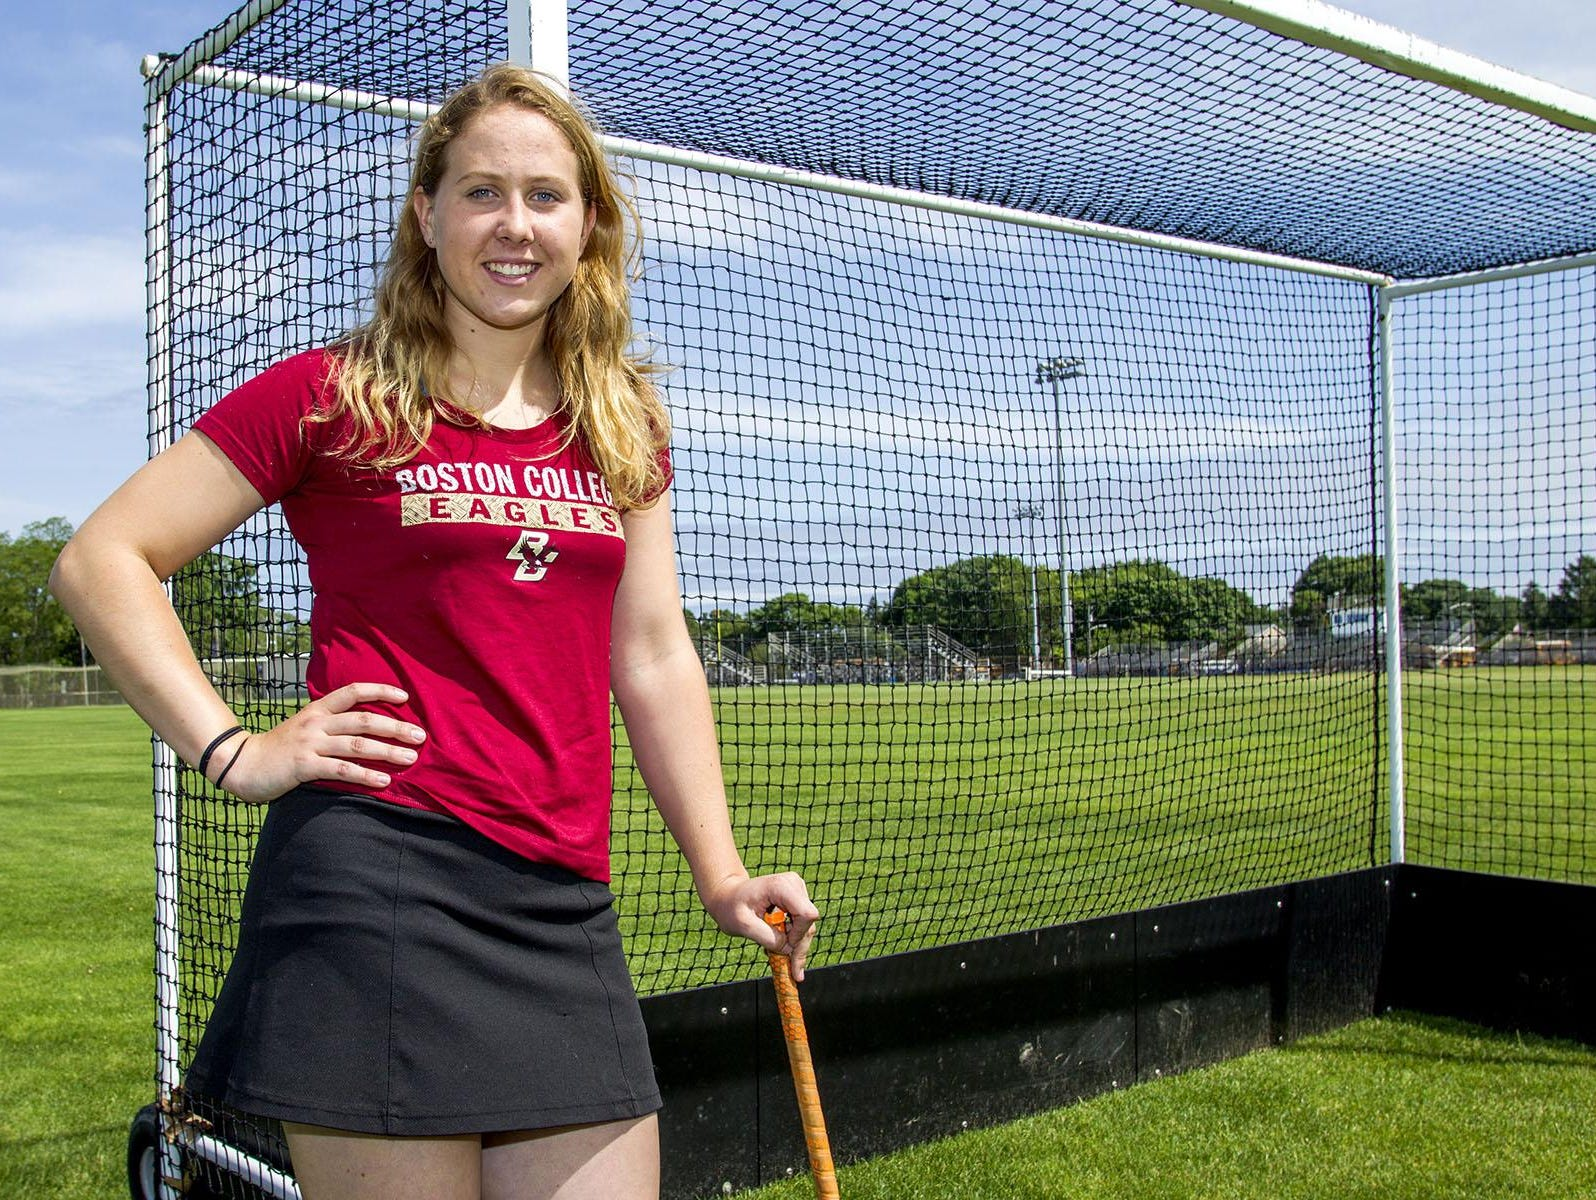 Sarah Dwyer has committed to play field hockey at Boston College.